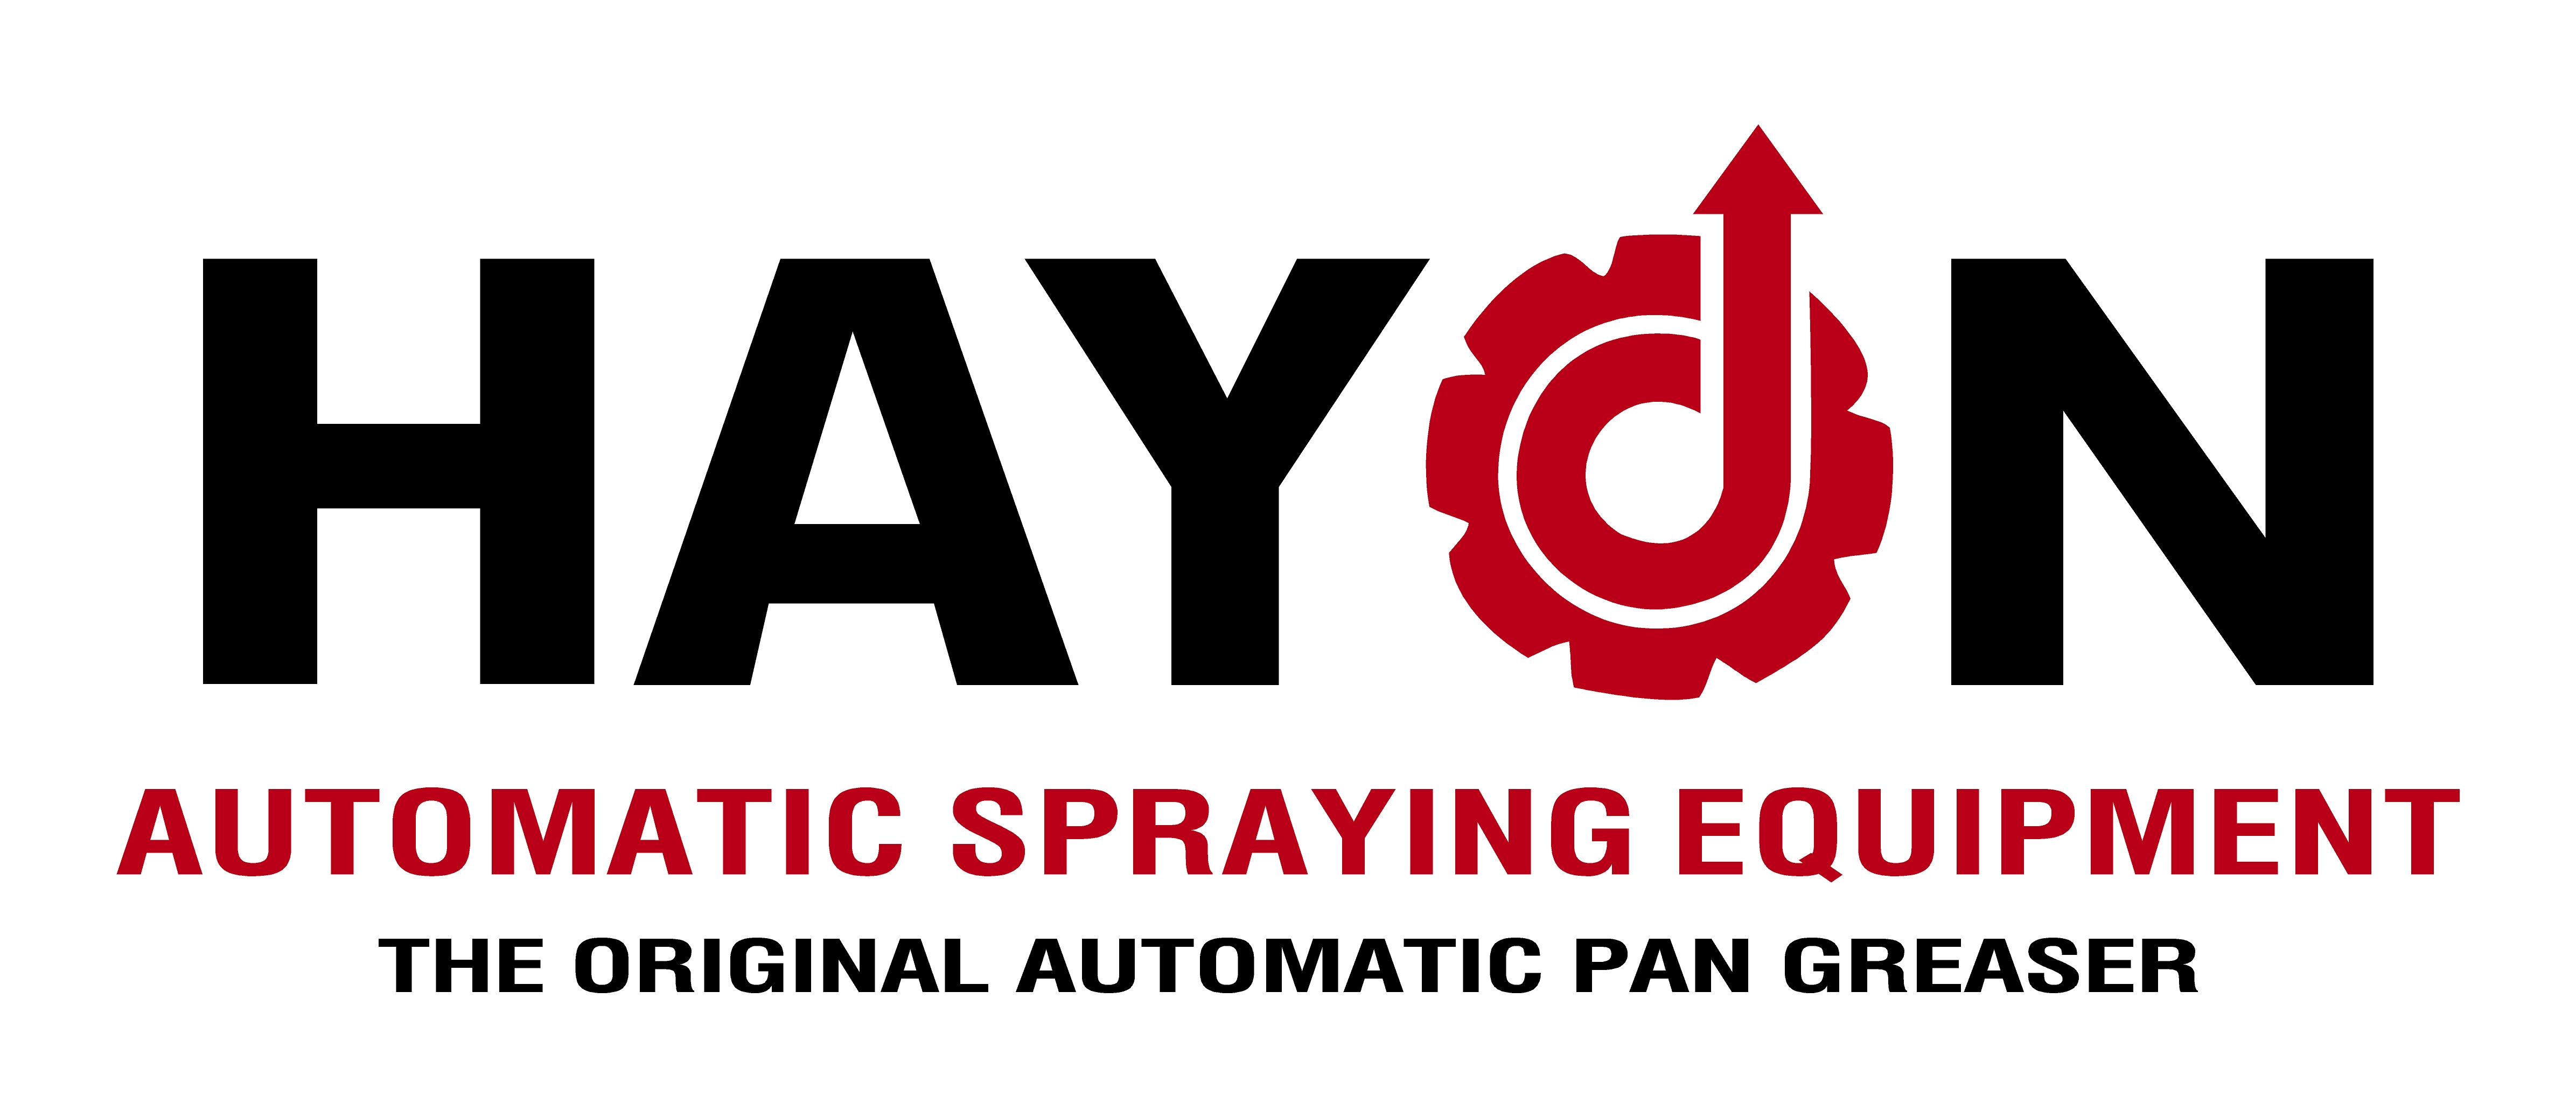 Hayon Automatic Spraying Equipment